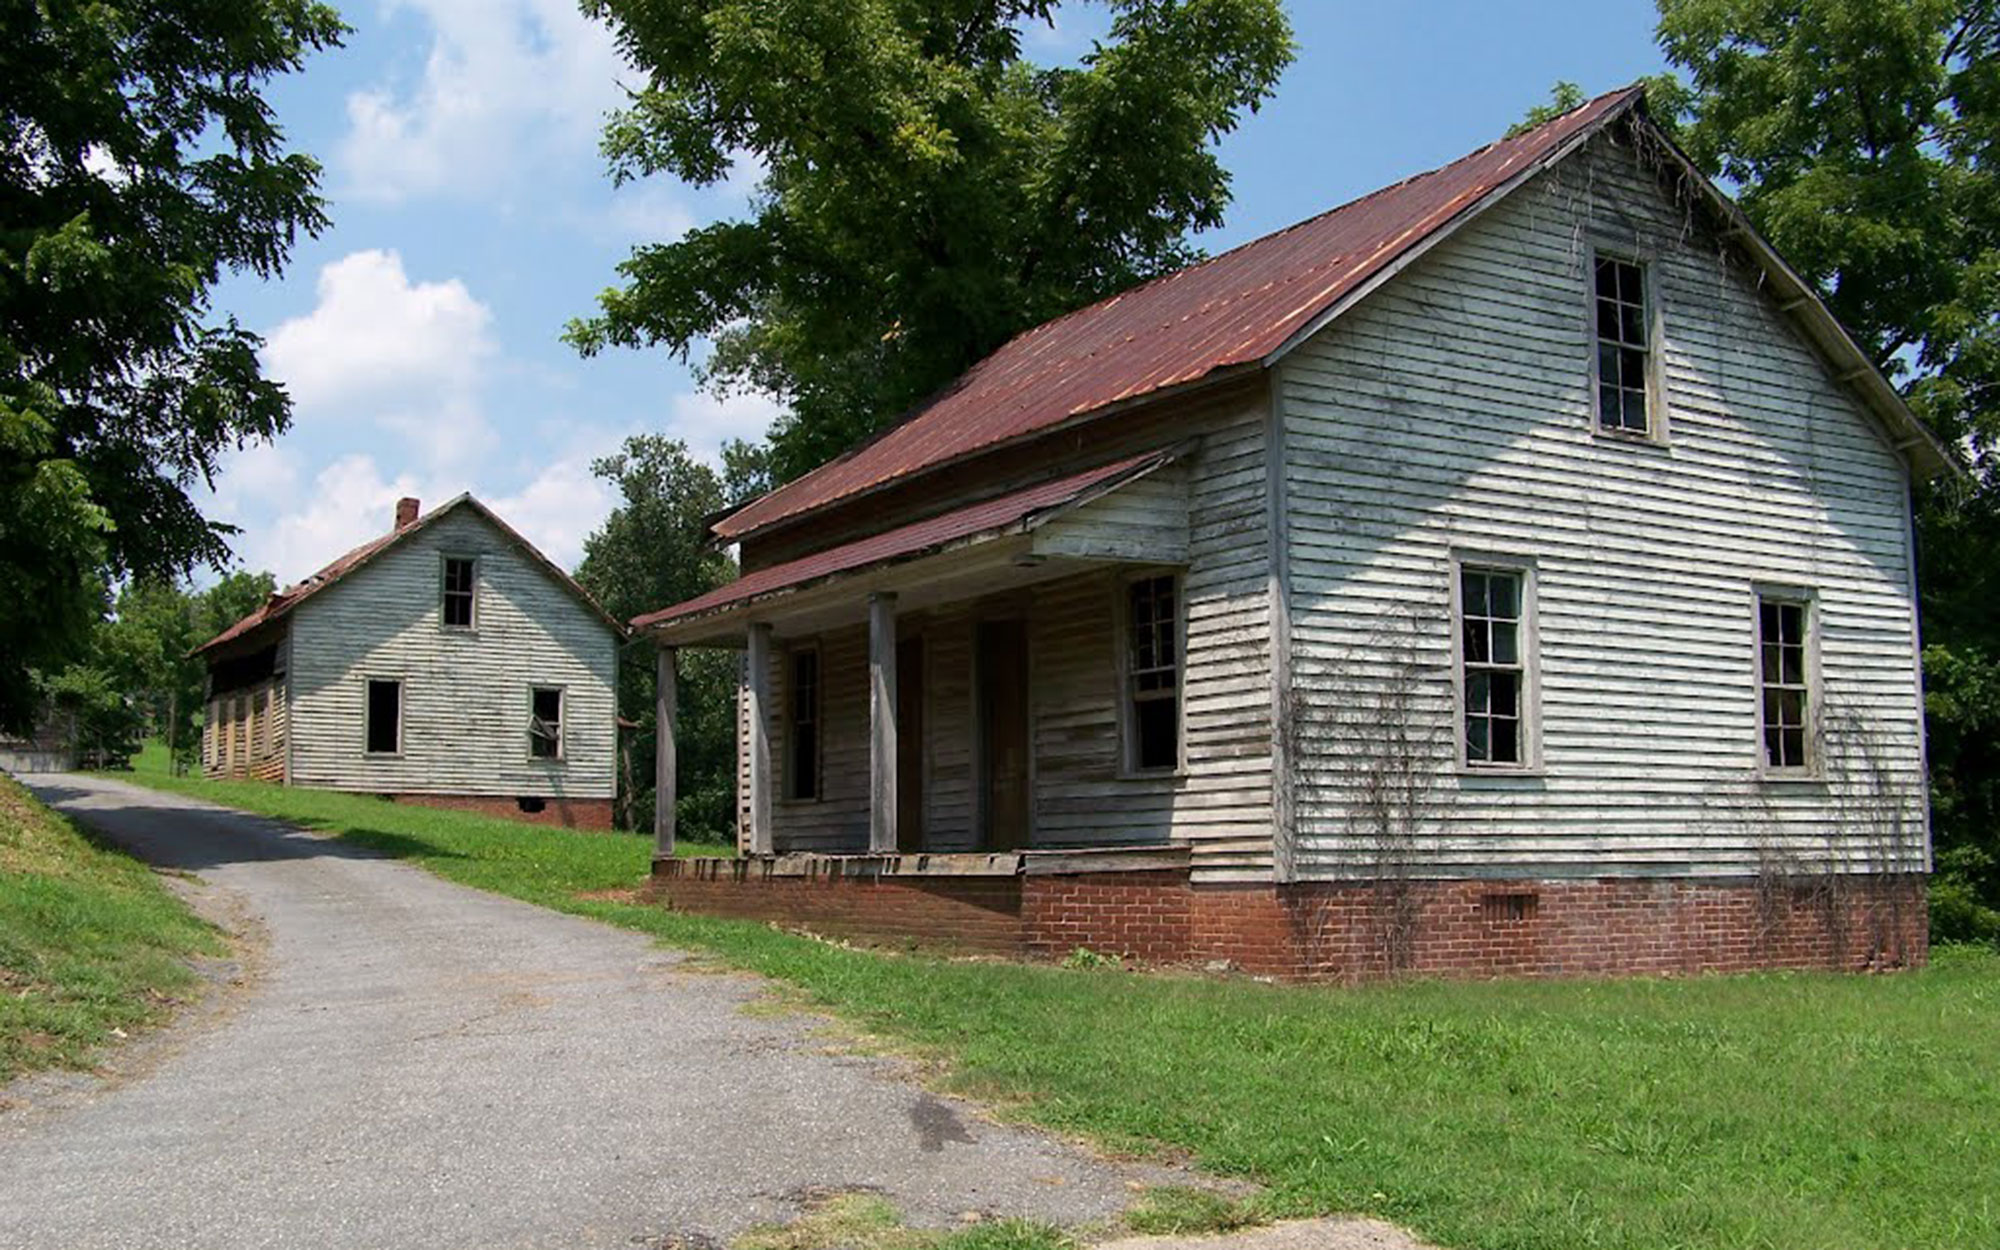 Abandoned Movie Sets You Can Still Visit: Hunger Games' District 12 in Henry River Mill Village, North Carolina